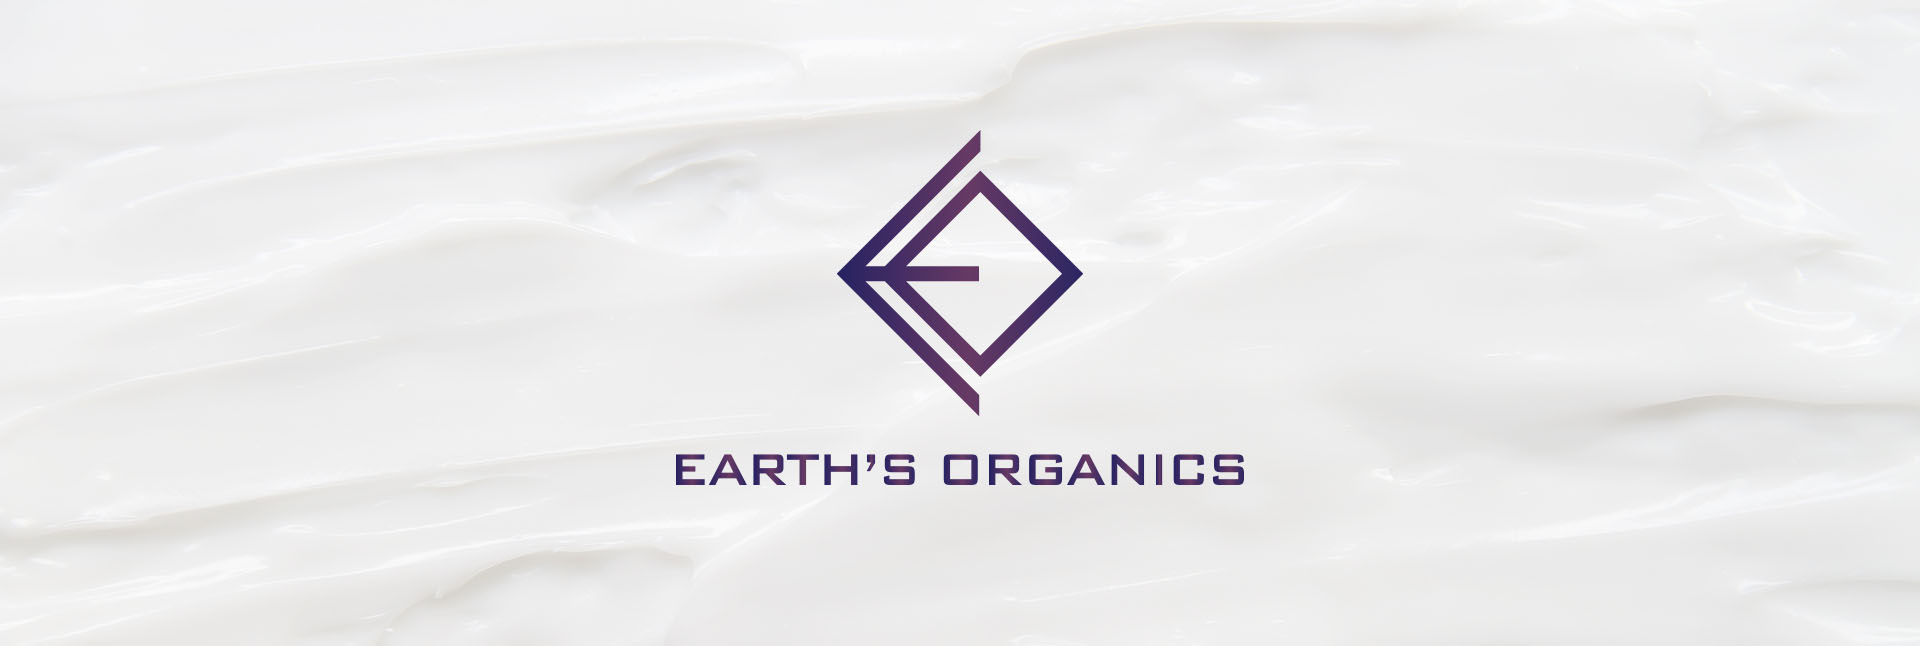 Earth's Organics - Logo Design